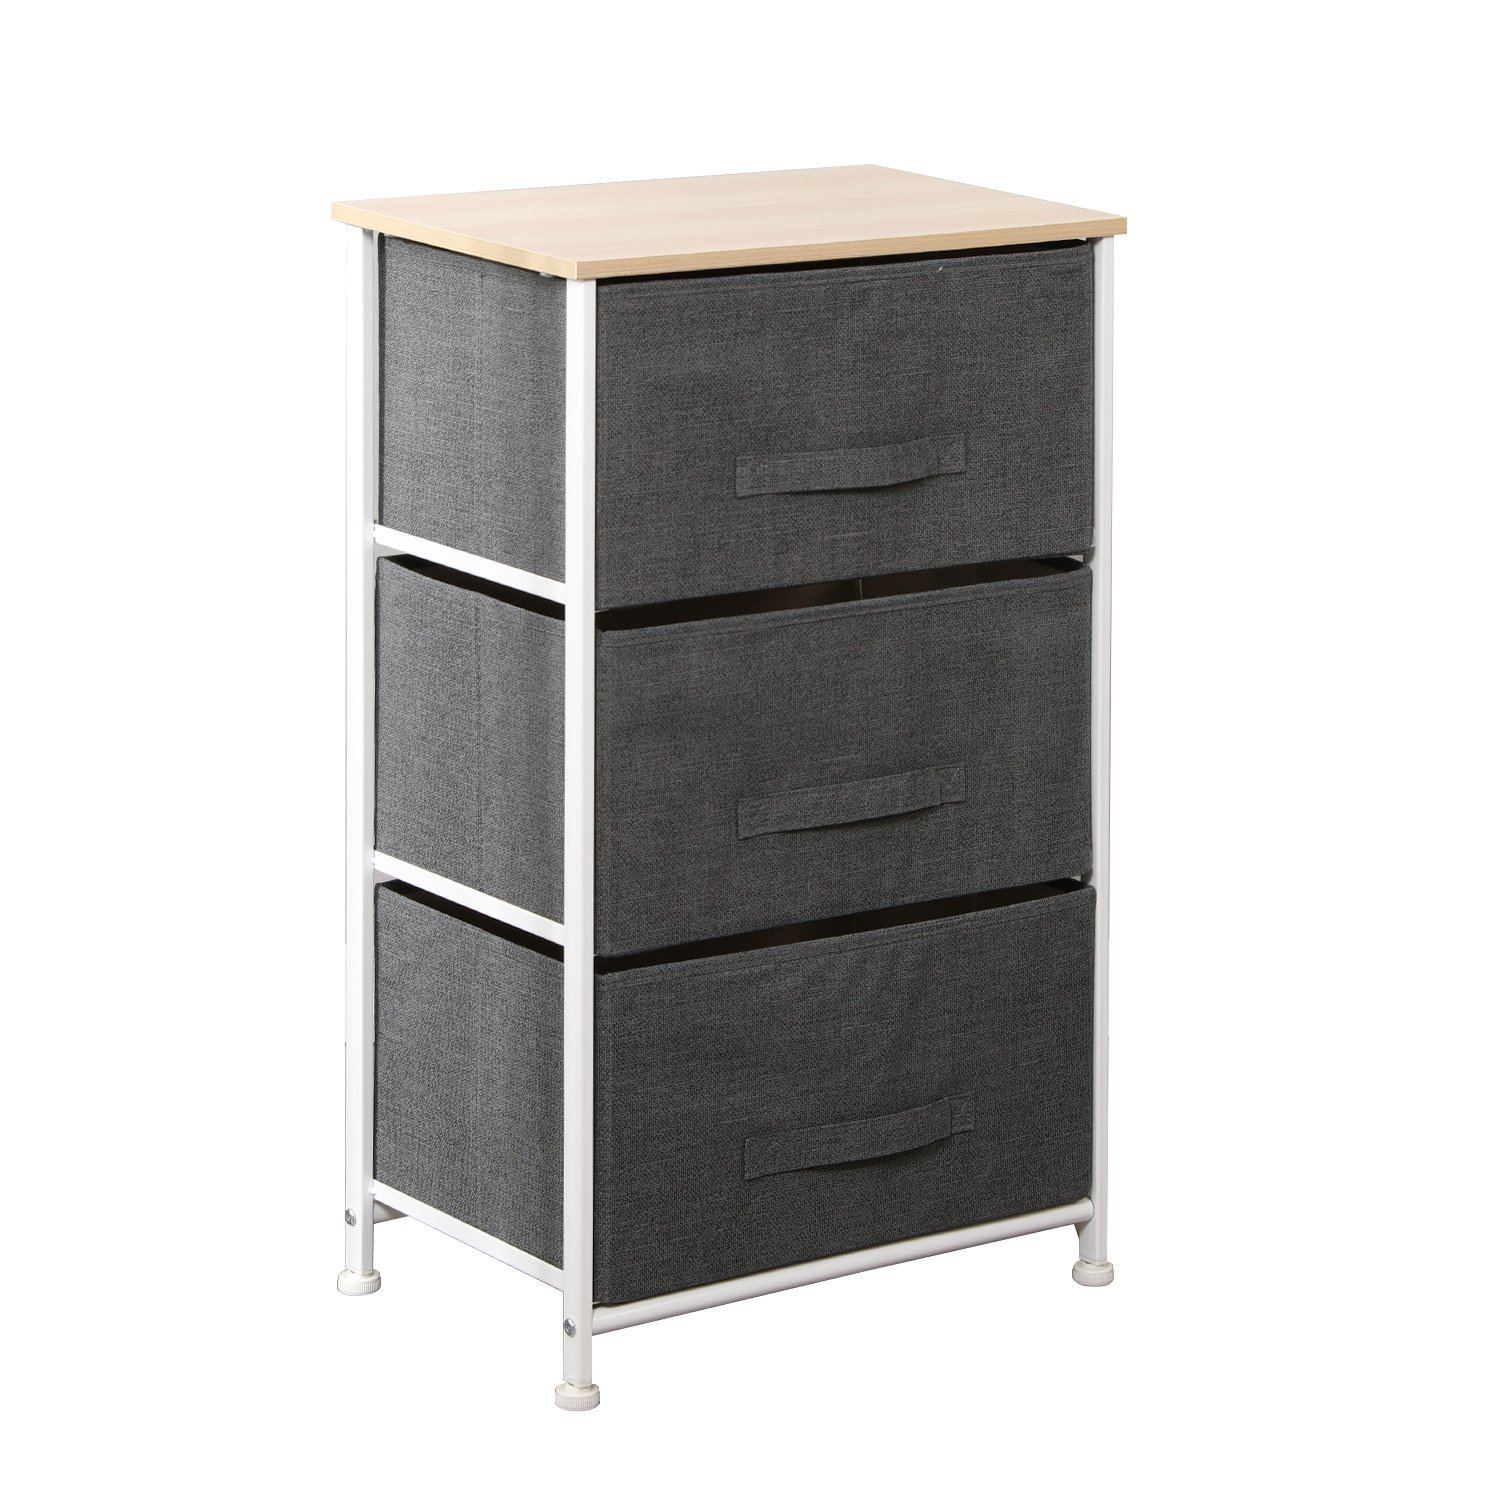 soges 2-Drawer Storage Organizer Unit for Bedroom, Living Room, Night Stand, Small Storage Drawer Units, Metal Frame with Fabric Bin, Beige 100N-BM PRC